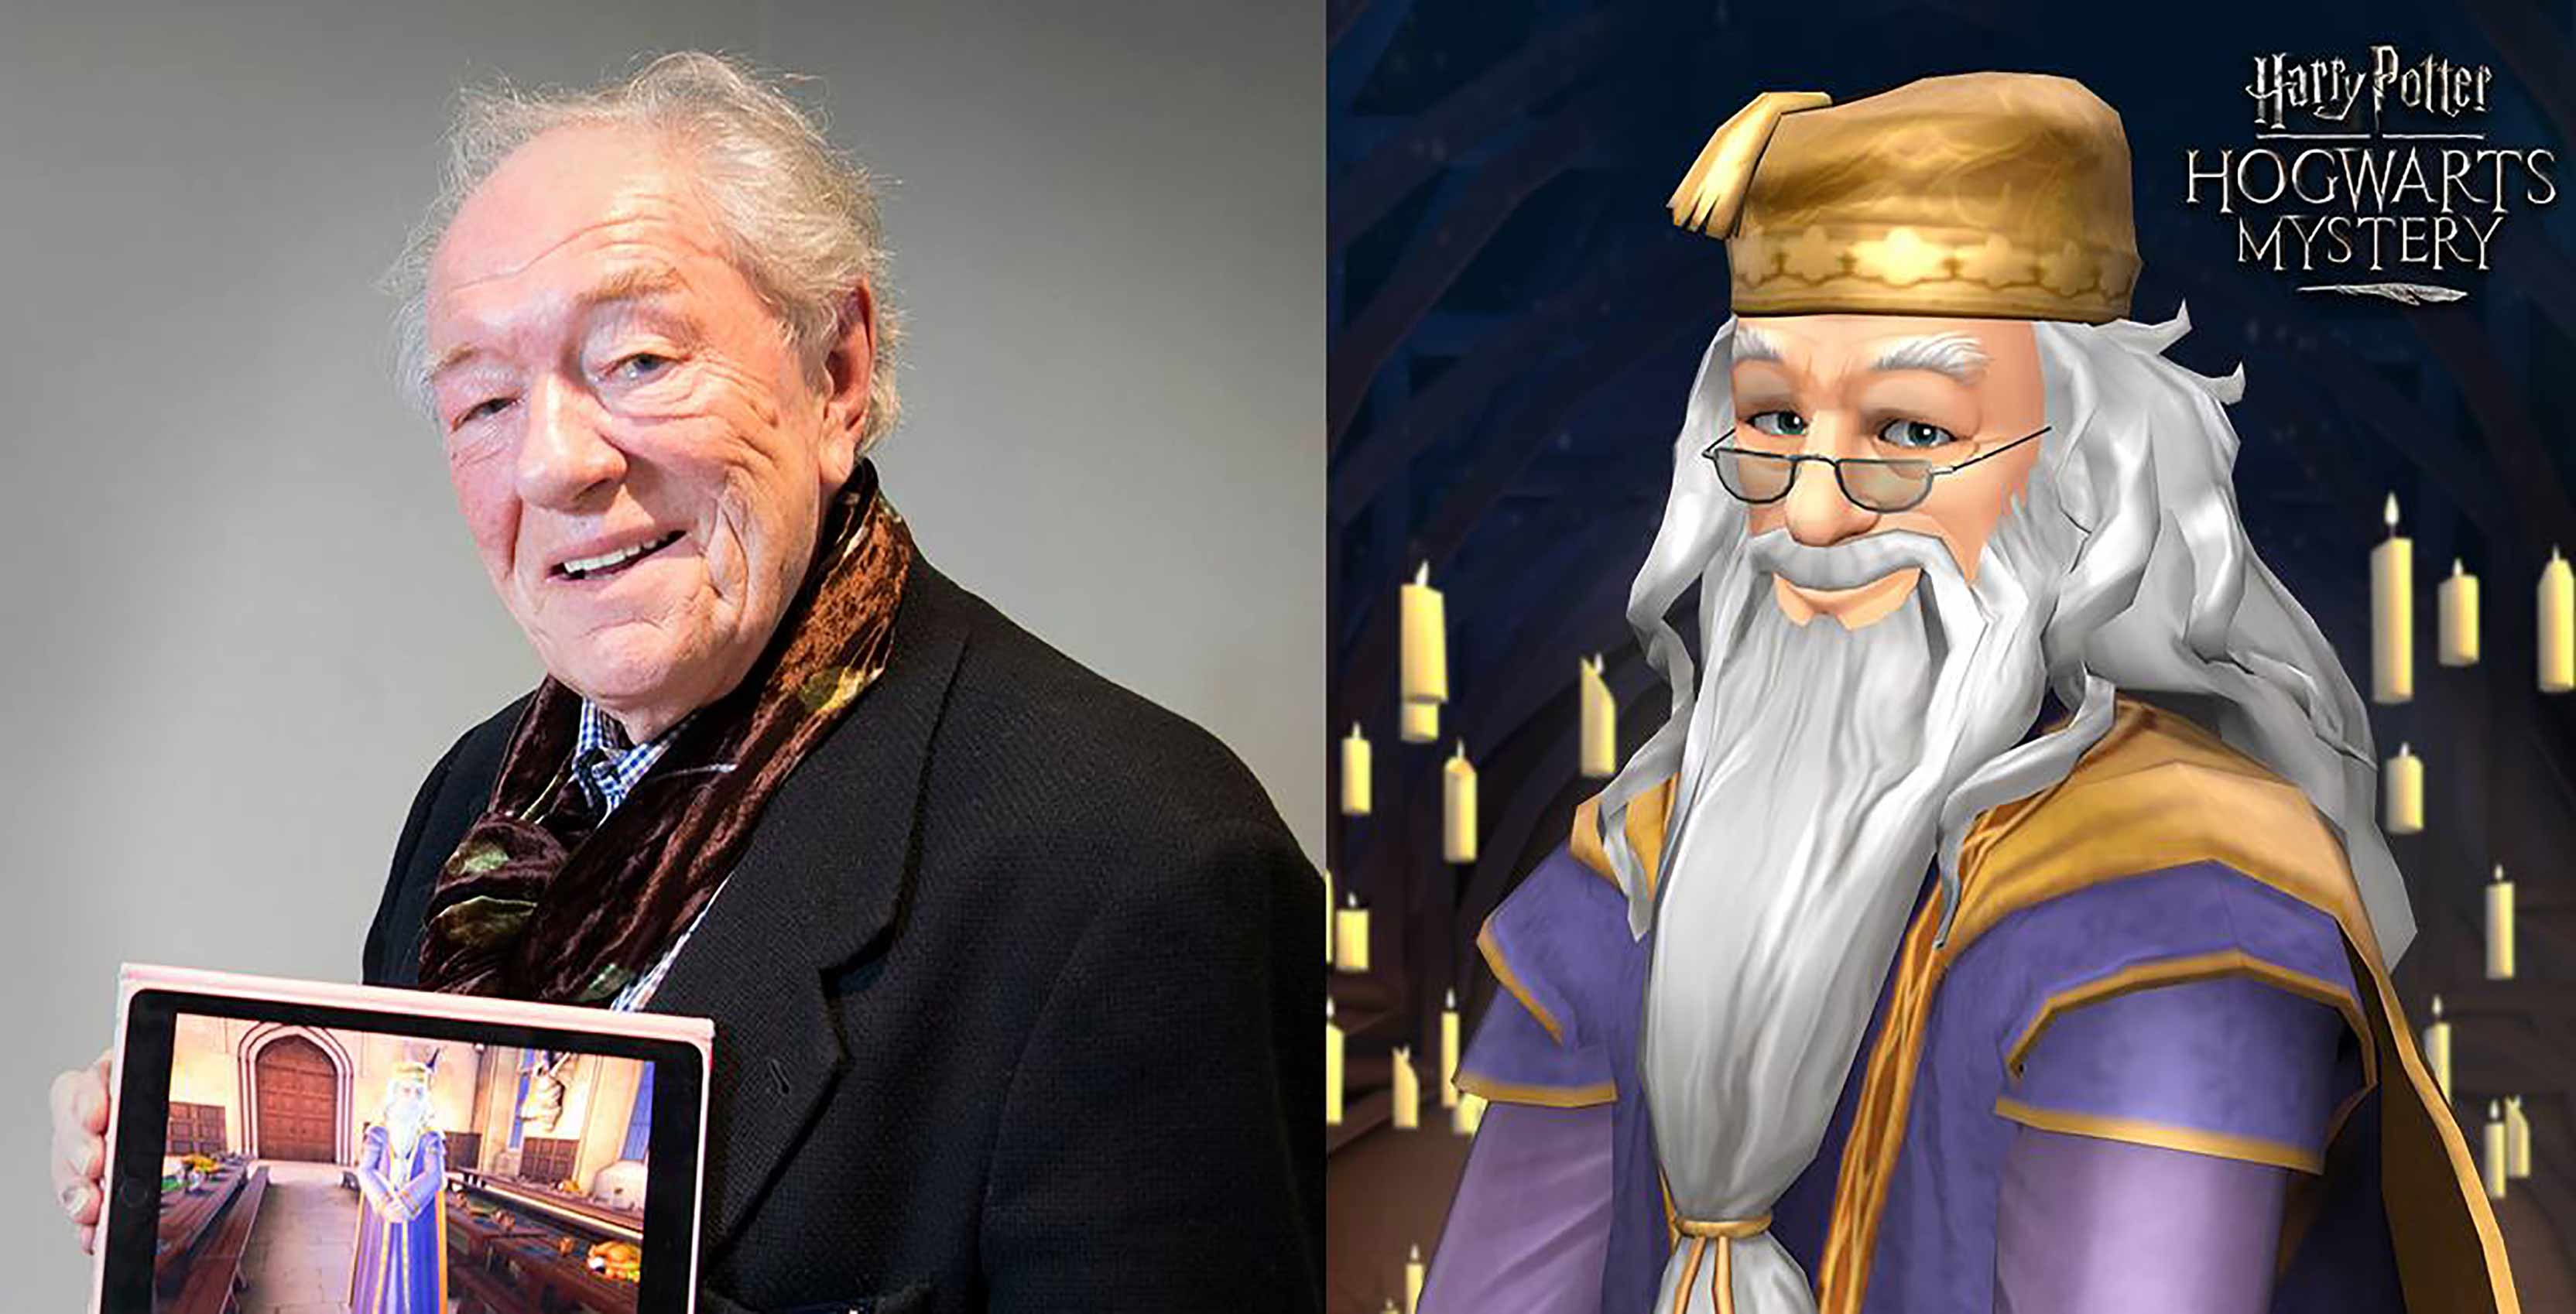 Harry Potter Hogwarts Mystery Michael Gambon